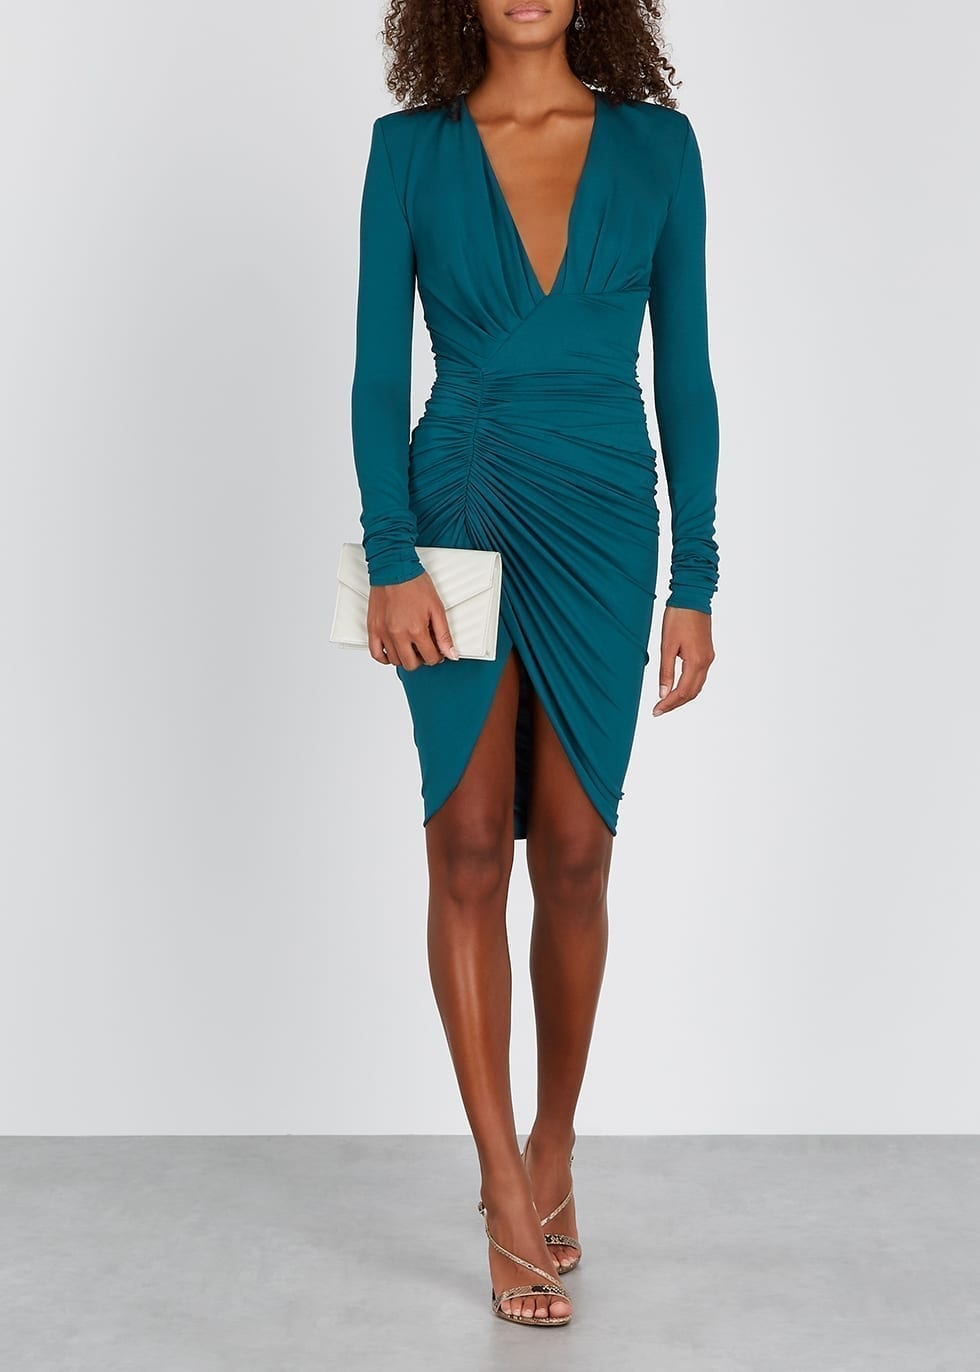 ALEXANDRE VAUTHIER Teal Ruched Mini Dress